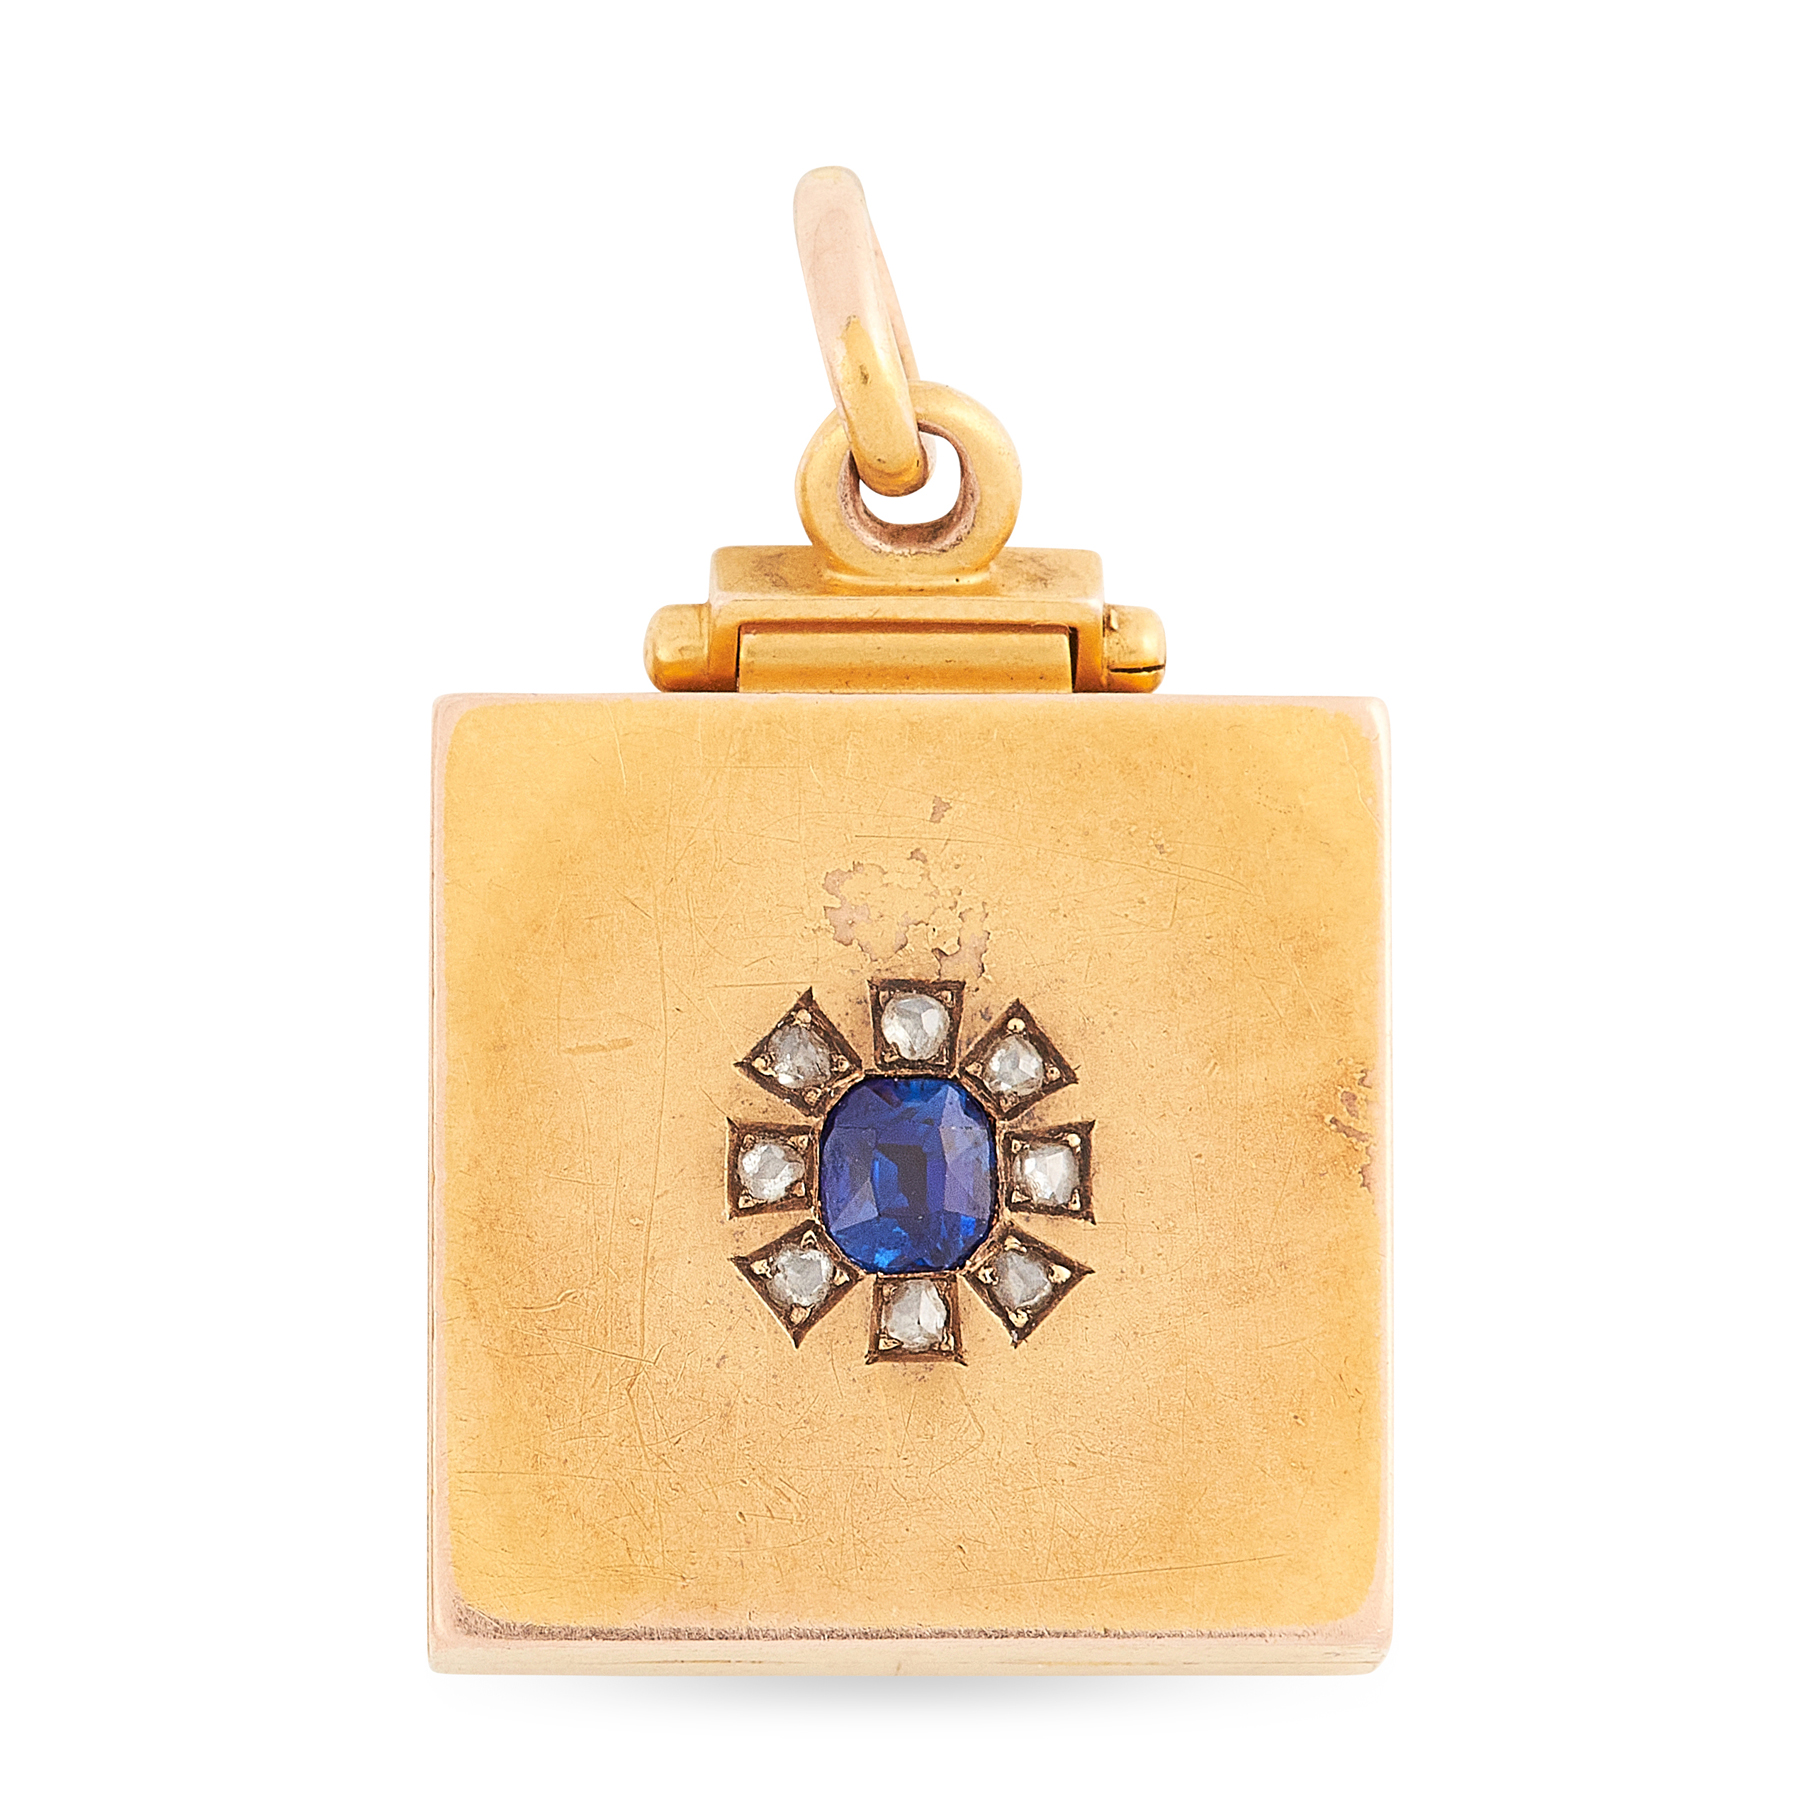 AN ANTIQUE SAPPHIRE AND DIAMOND LOCKET PENDANT in yellow gold, the square, hinged body with locket